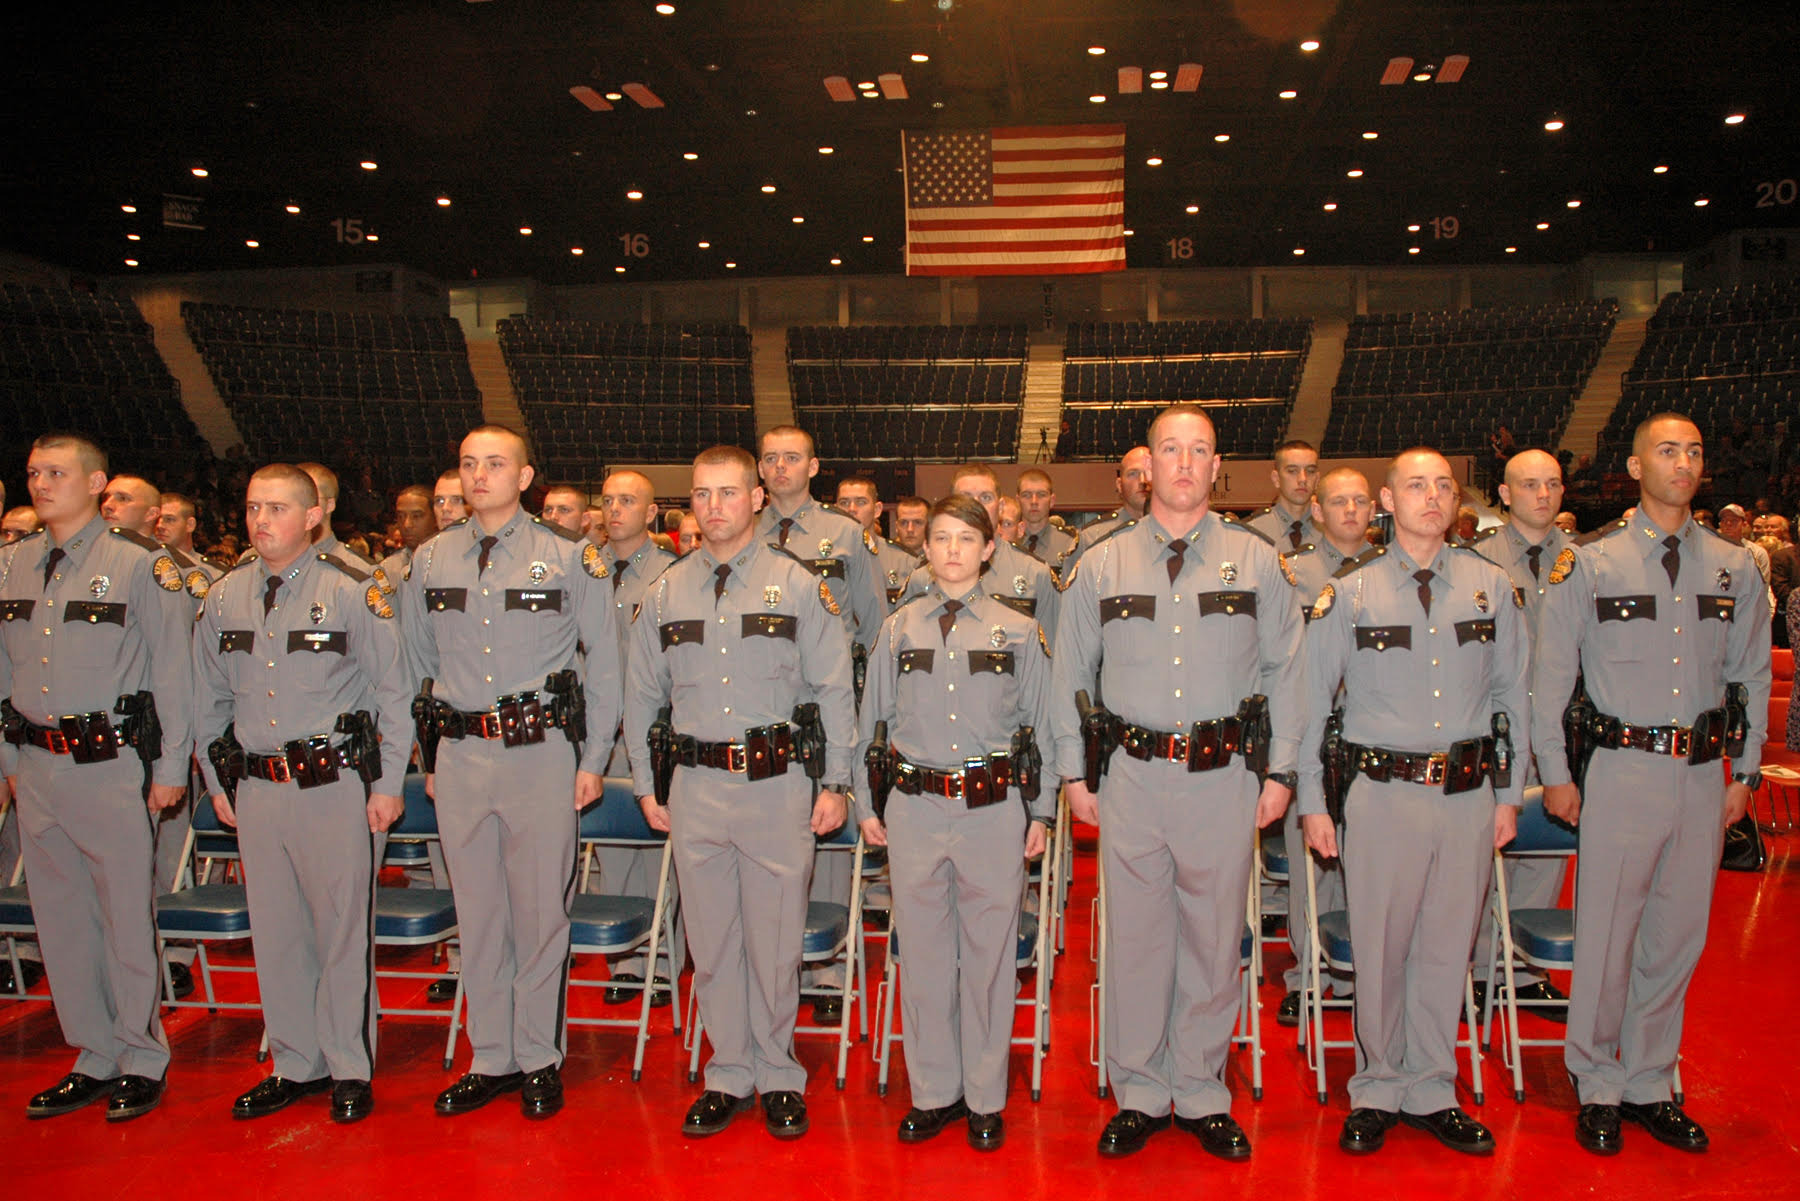 After a rigorous 23-weeks of training, 45 cadets graduate from